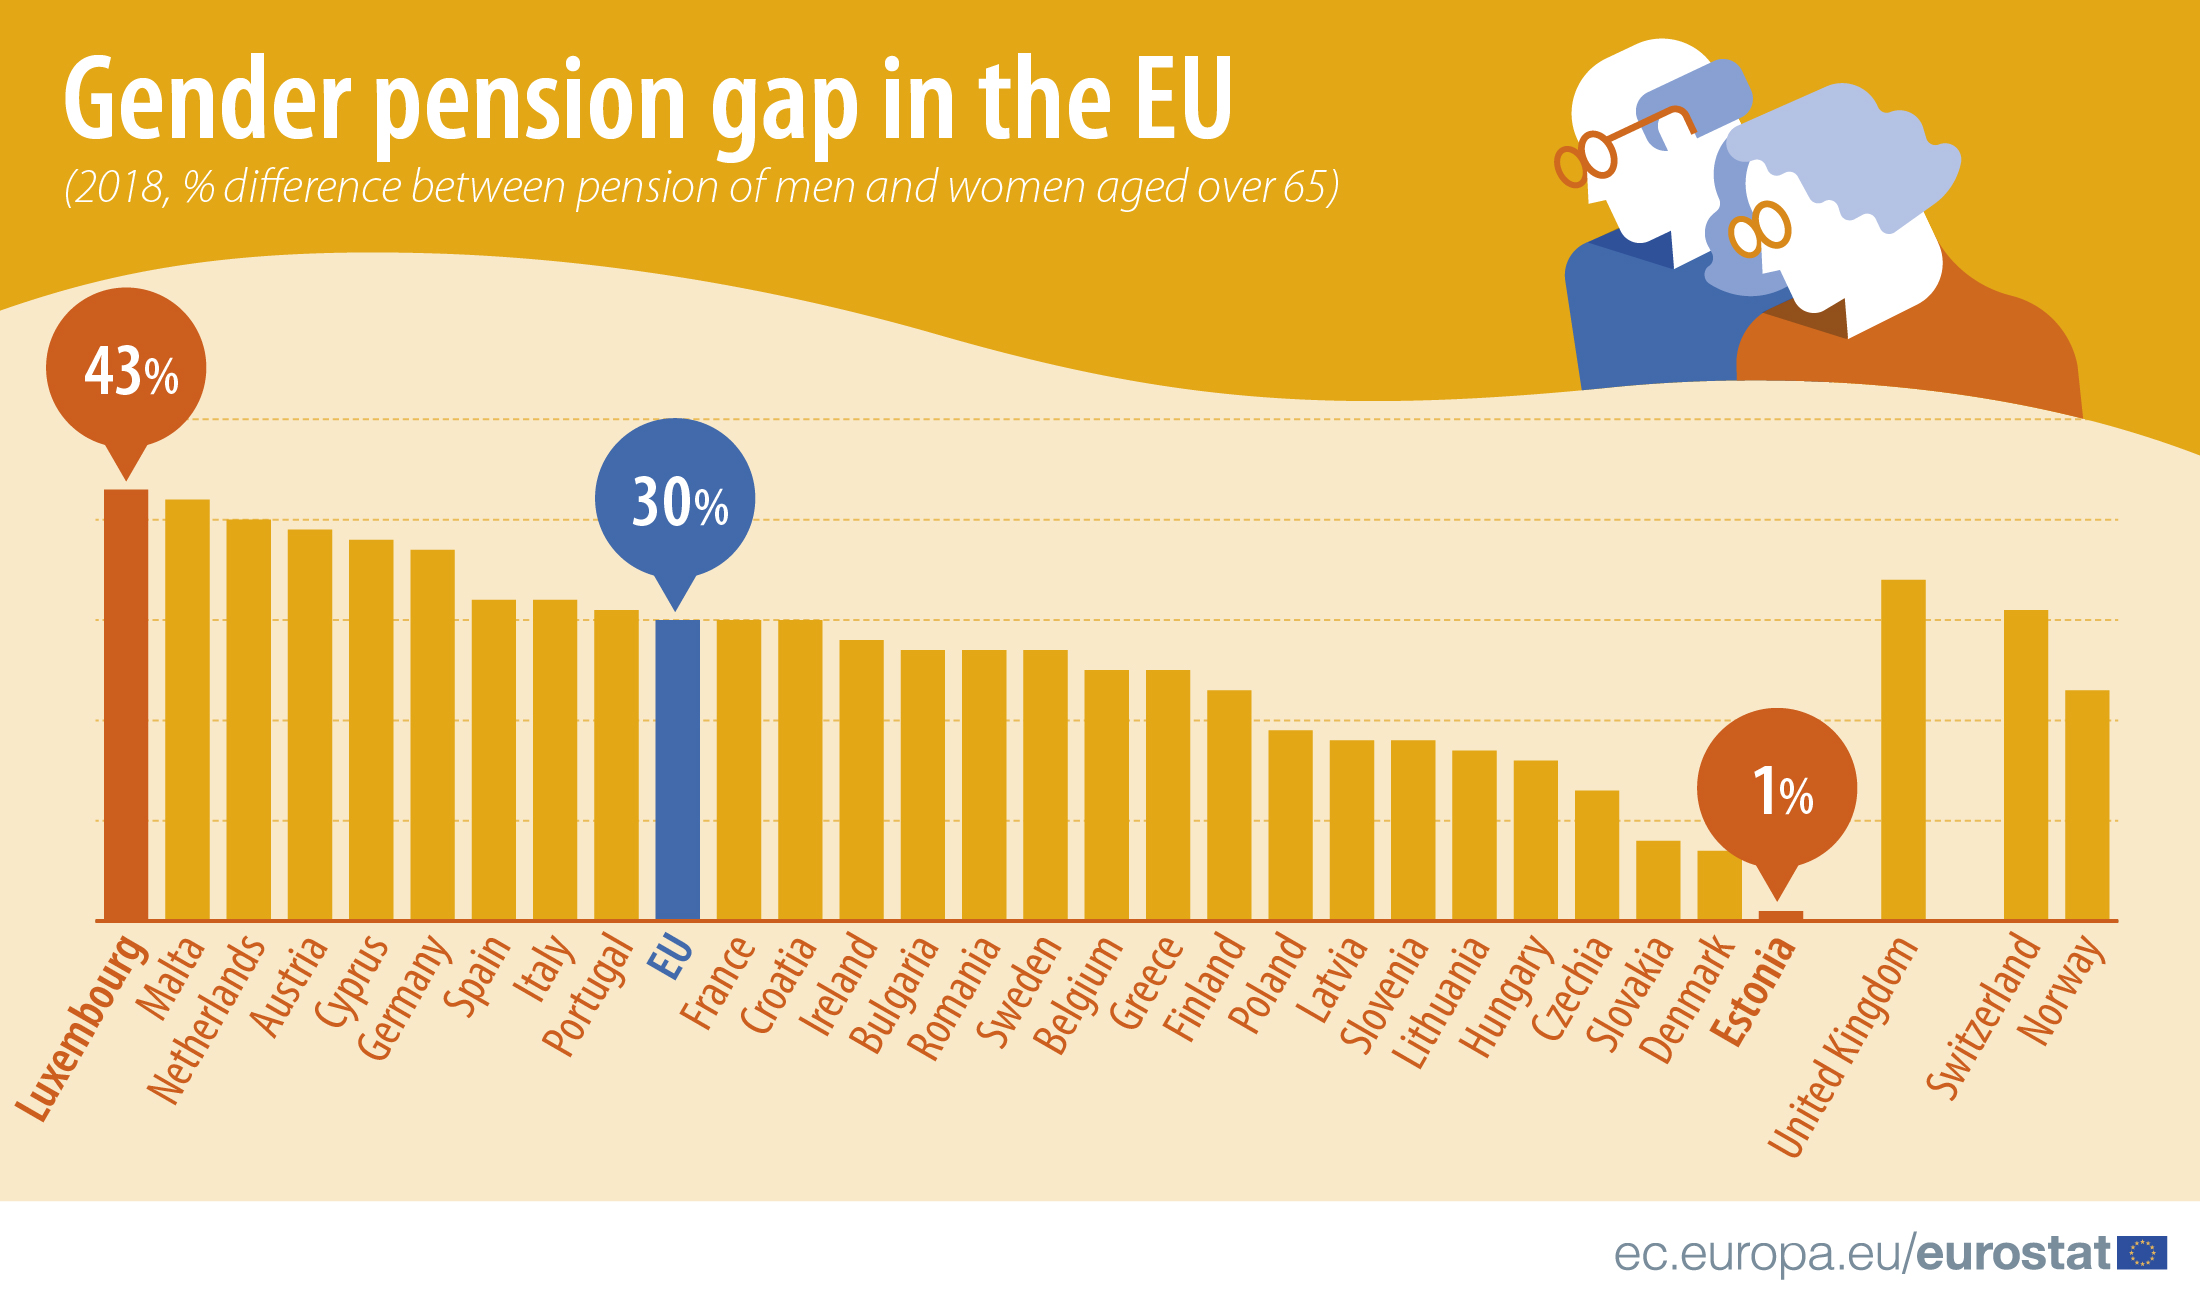 Gender pension gap, 2018